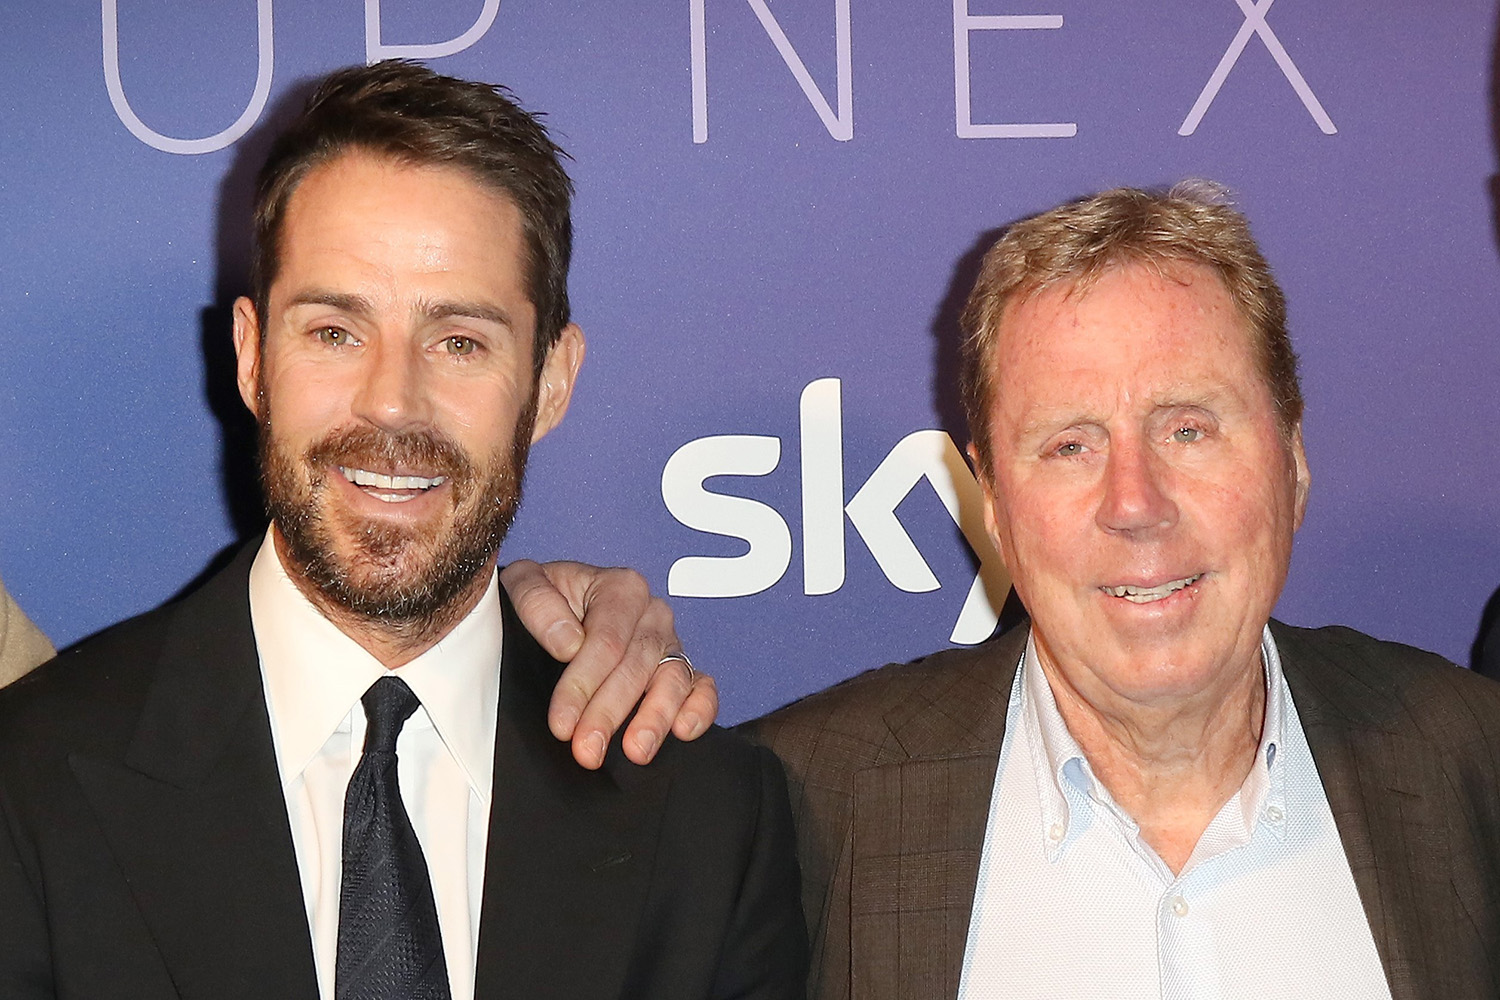 Harry Redknapp jokes about son Jamie's divorce with Strictly 'curse' comment